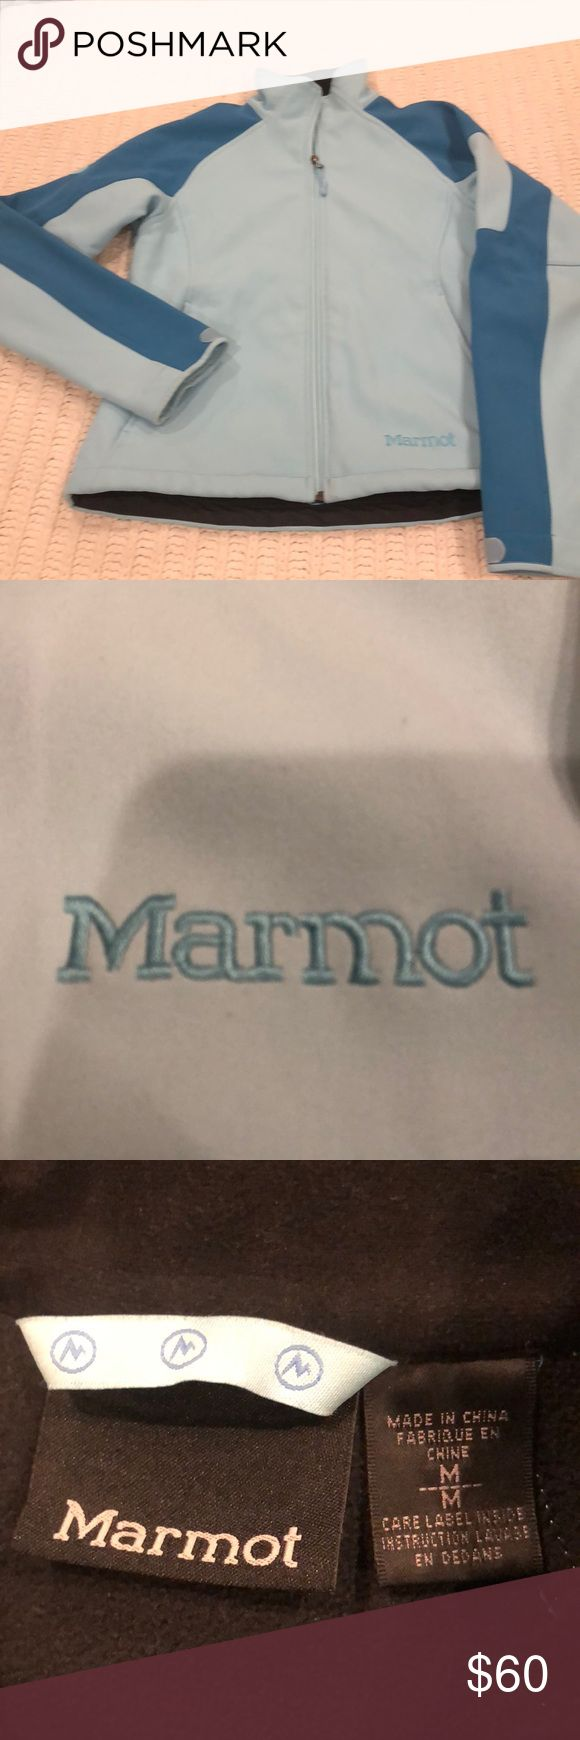 Marmot water resistant coat jacket medium near new Marmot wind and water resistant jacket sadly too small for me light turquoise blue and a turquoise blue size women's medium Marmot Jackets & Coats